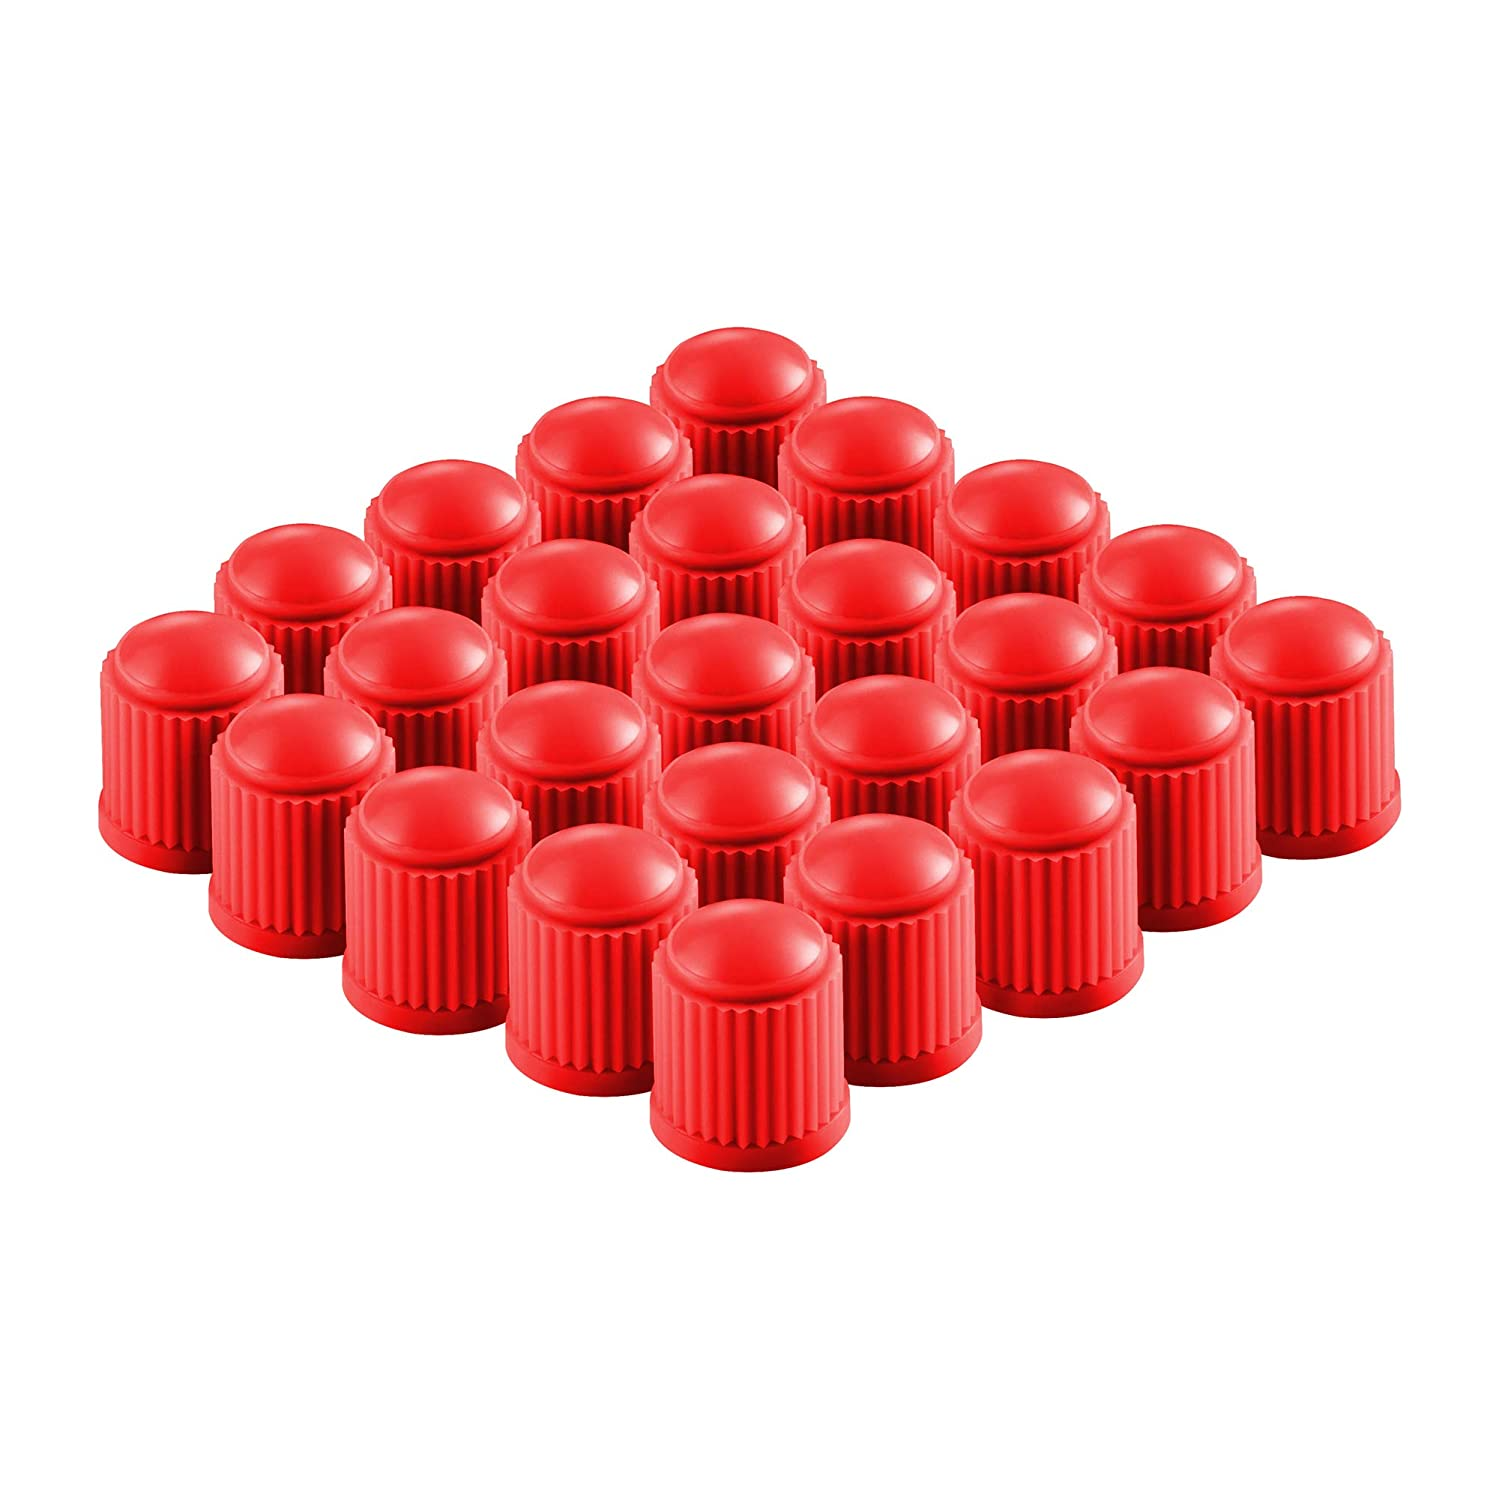 Universal Stem Covers for Cars SUVs Heavy-Duty Easy-Grip Use 25-Pack Airtight Seal Bike and Bicycle Red Trucks Red Valve-Loc Tire Valve Caps Motorcycles Screw-On